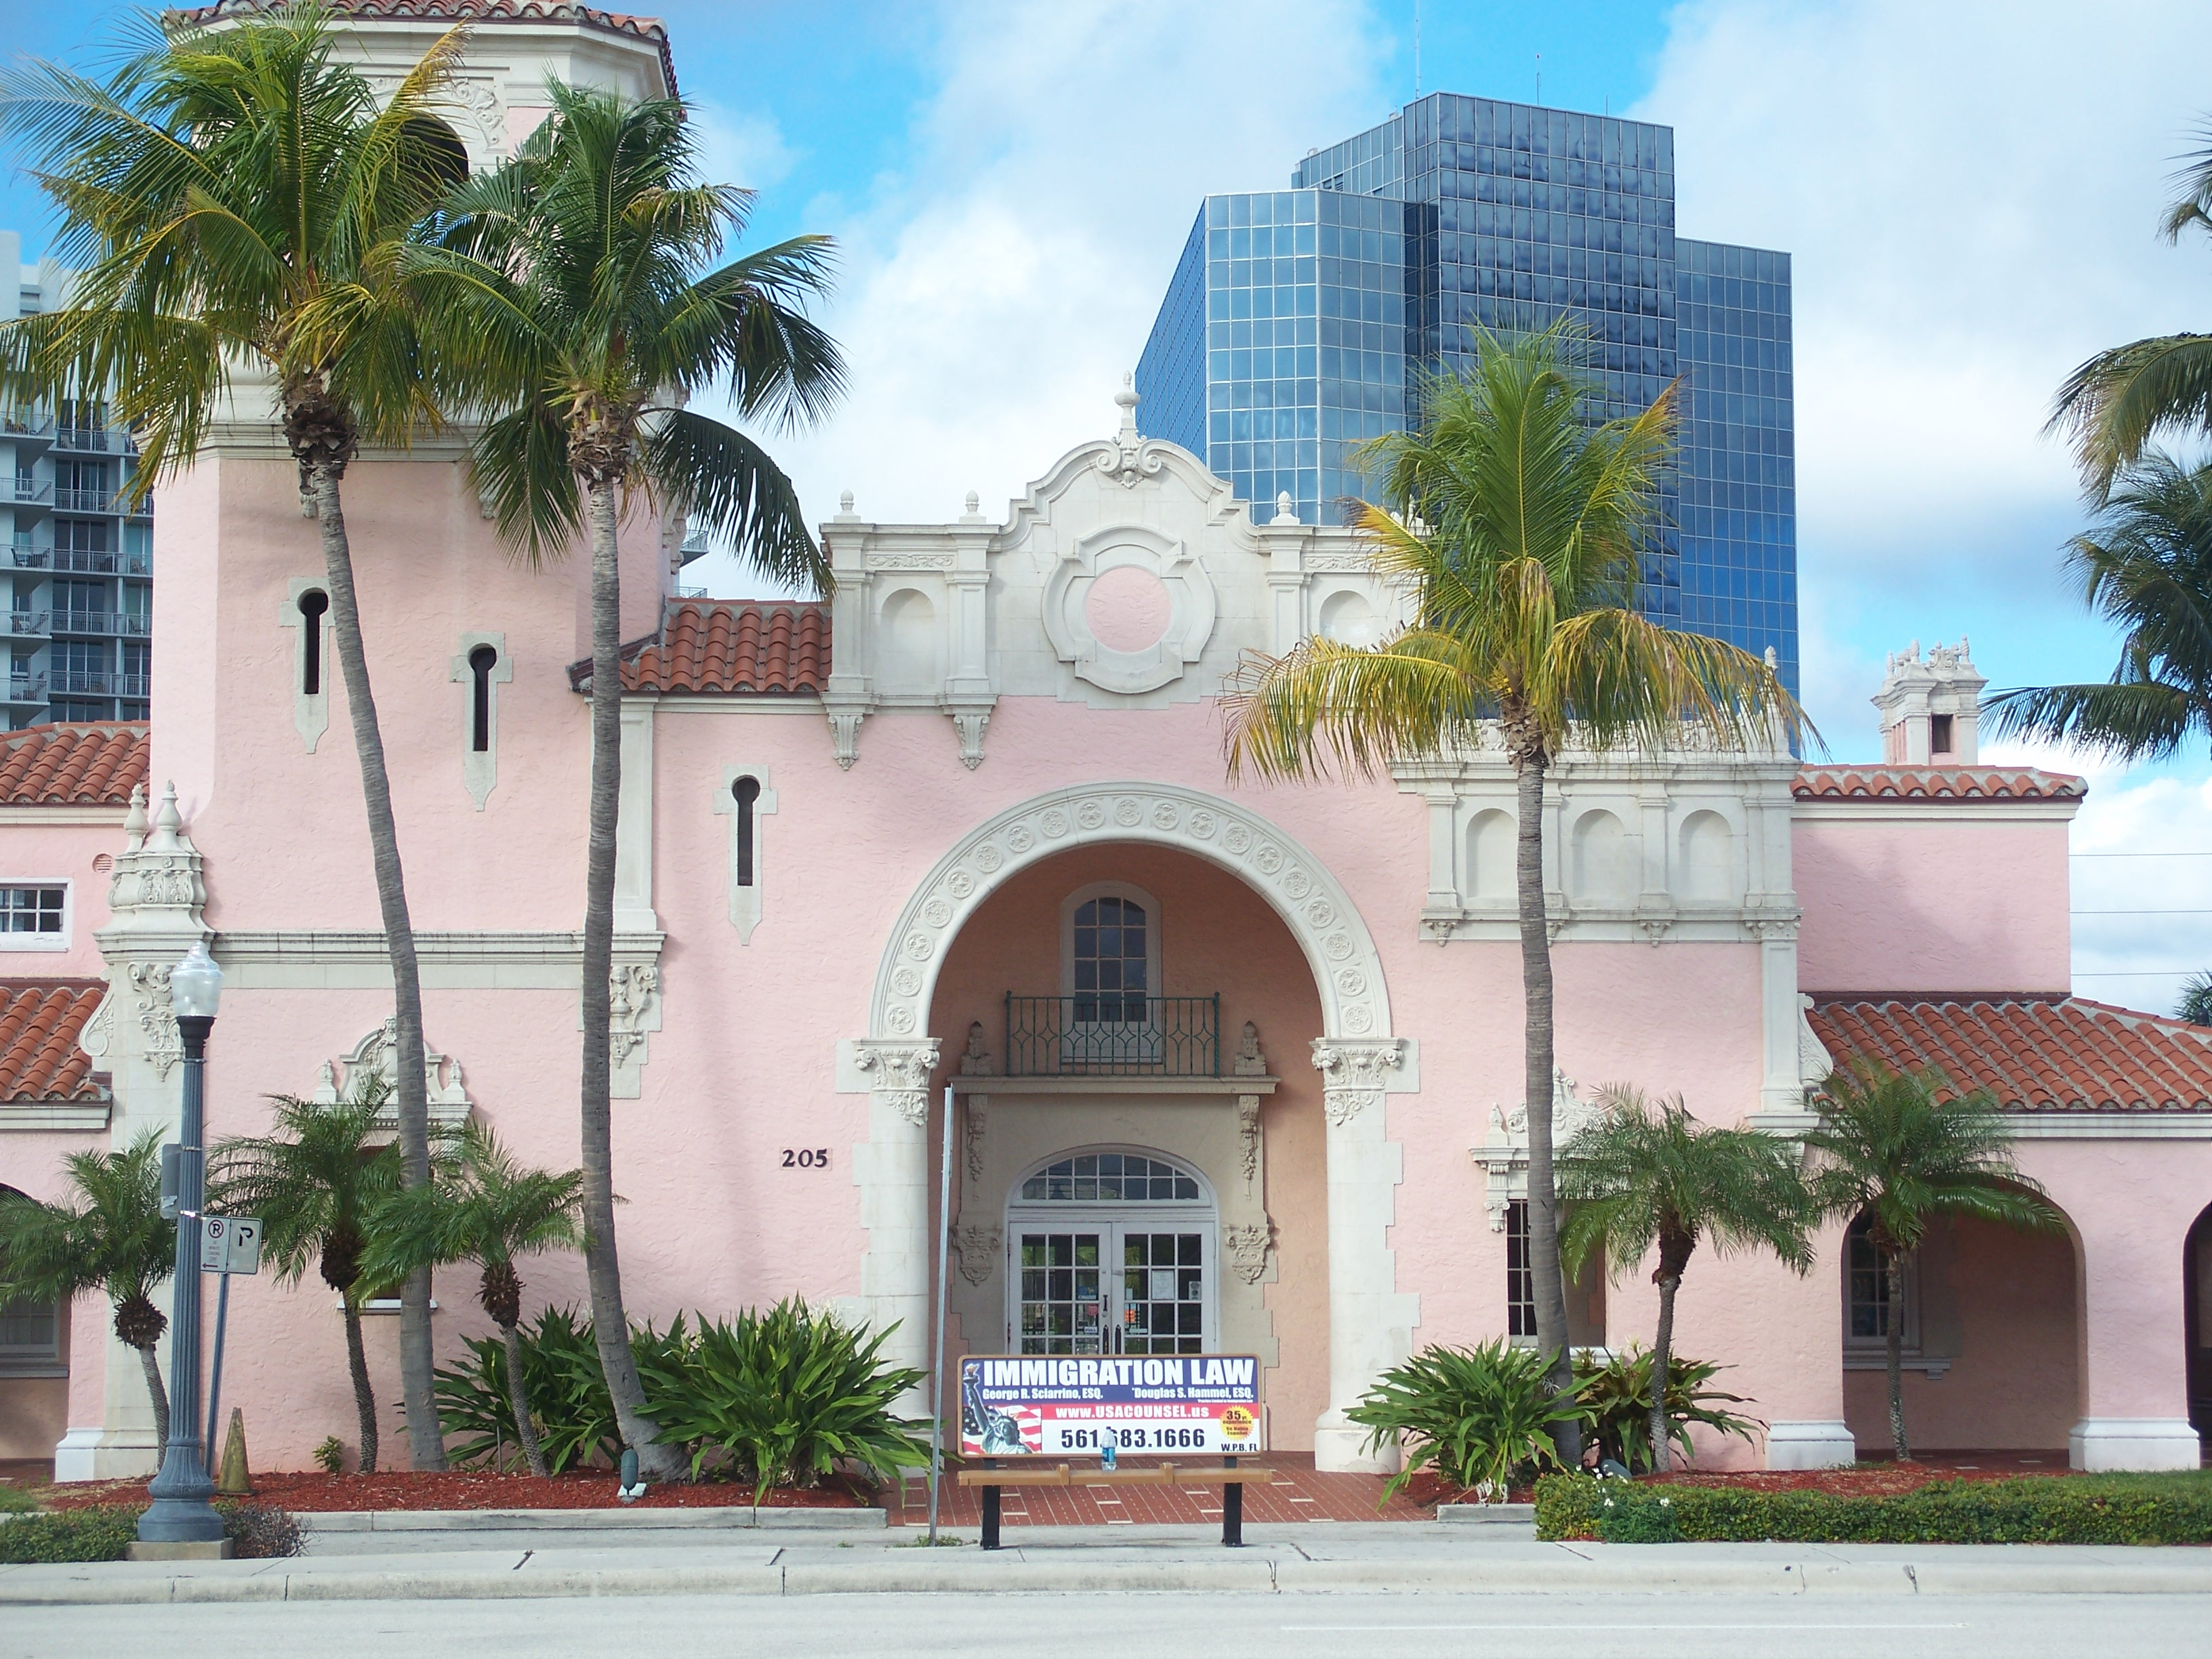 west palm beach – travel guide at wikivoyage